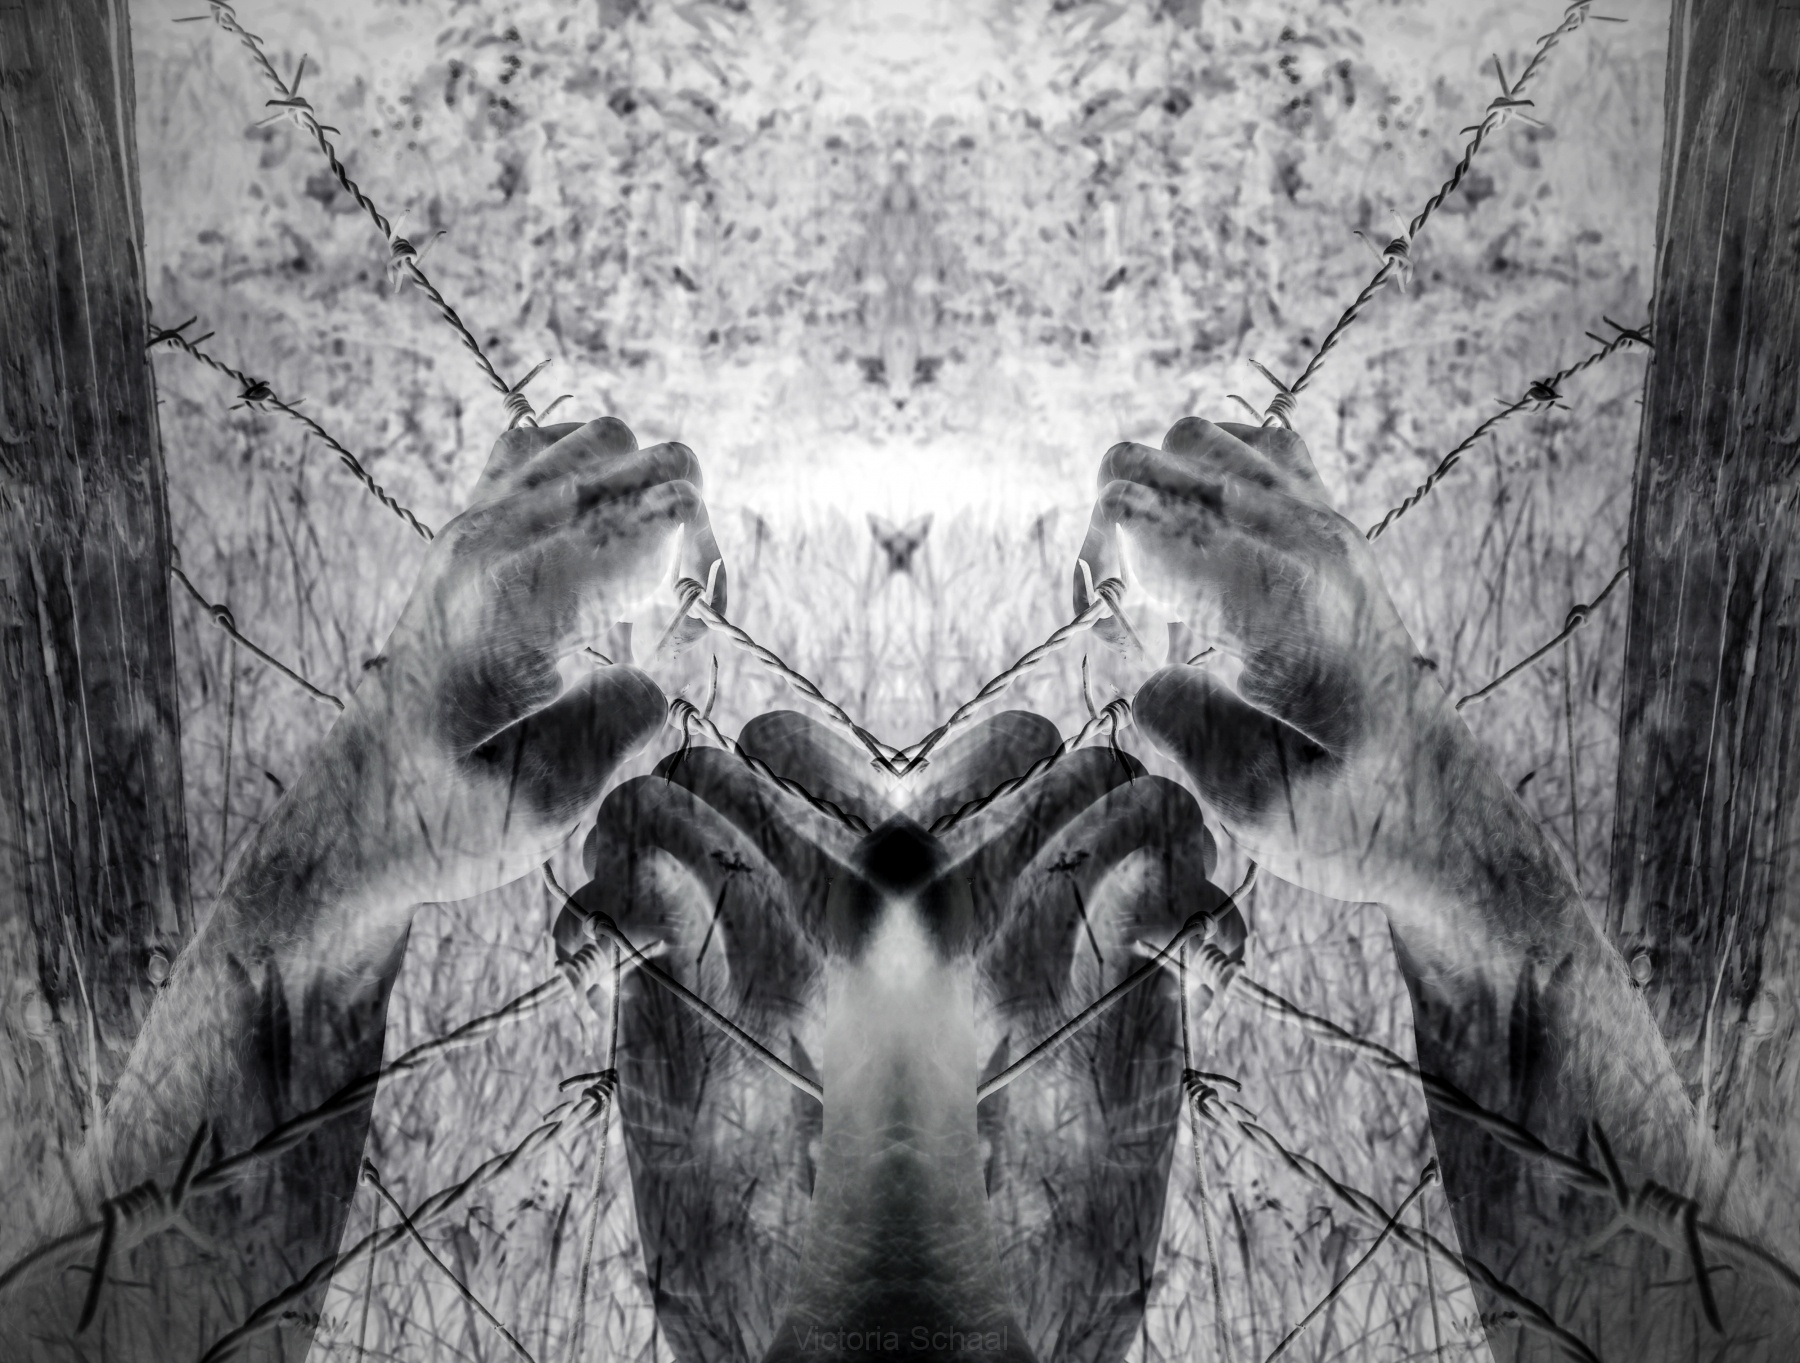 Artistic surreal tortured hands grasping desperately barbed wire (infrared)